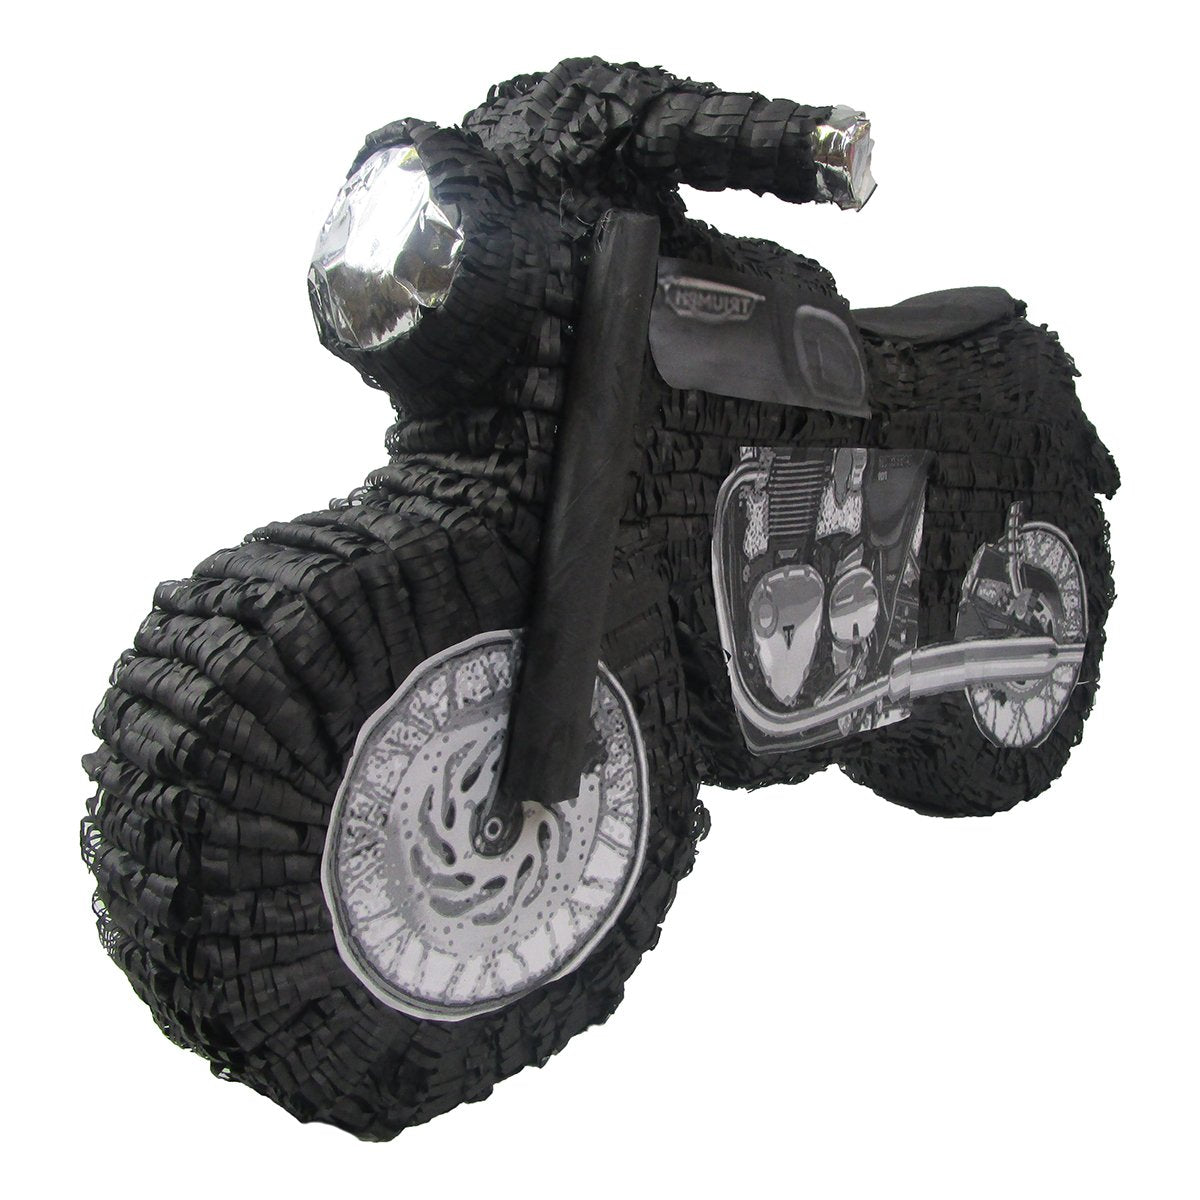 CUSTOM MOTORCYCLE PINATA